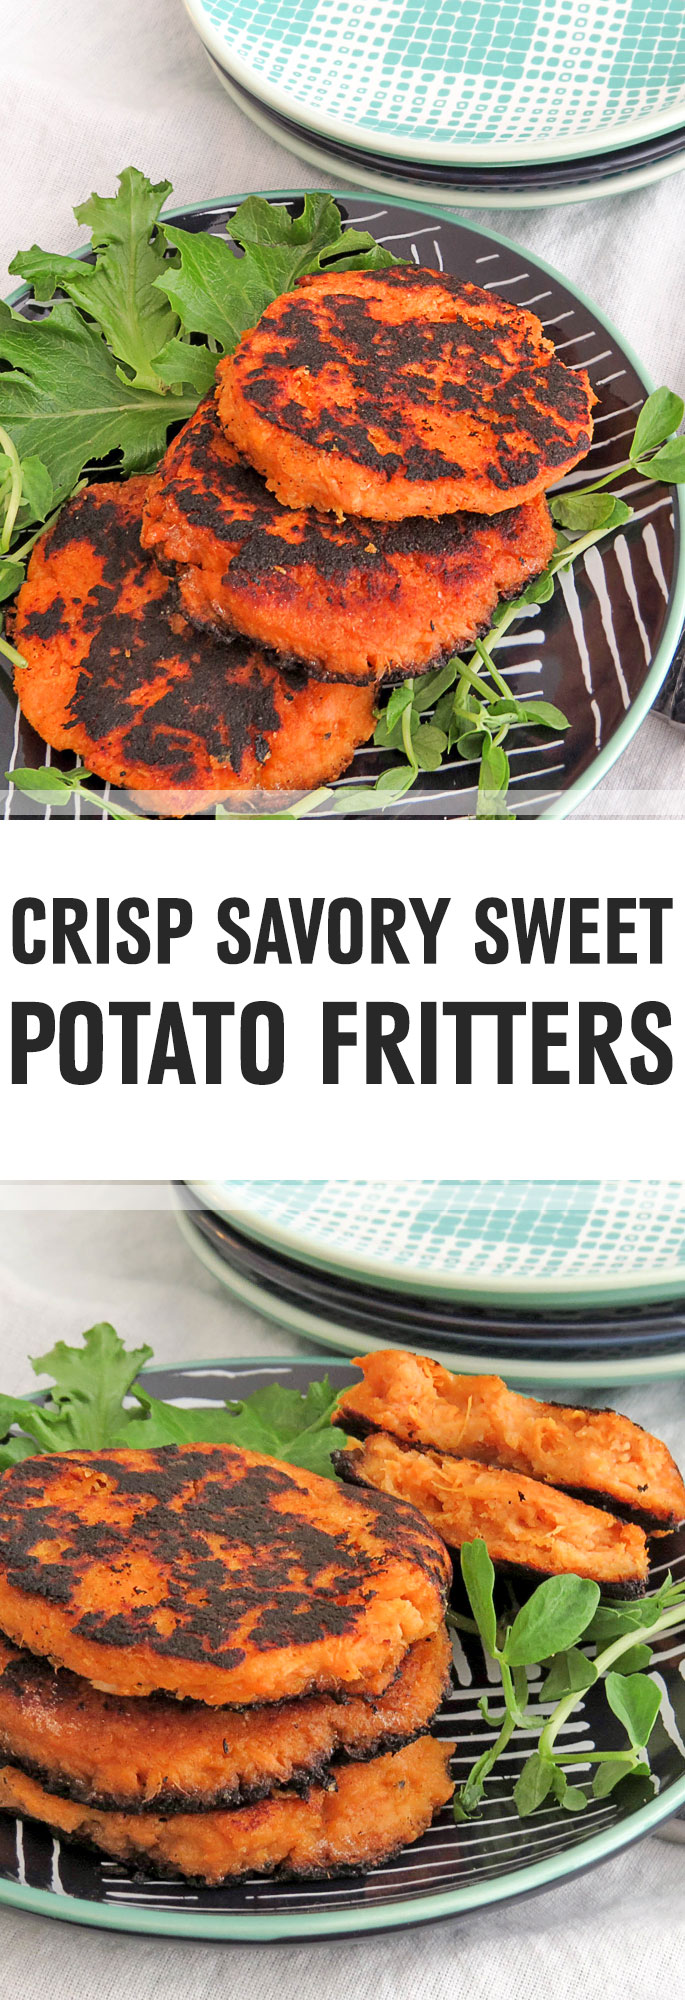 Sweet potatoes are loaded with antioxidants and anti-inflammatory compounds, making these fritters a great way to get some nutrition onto your dinner plate. Shared via http://www.gluteninsight.com